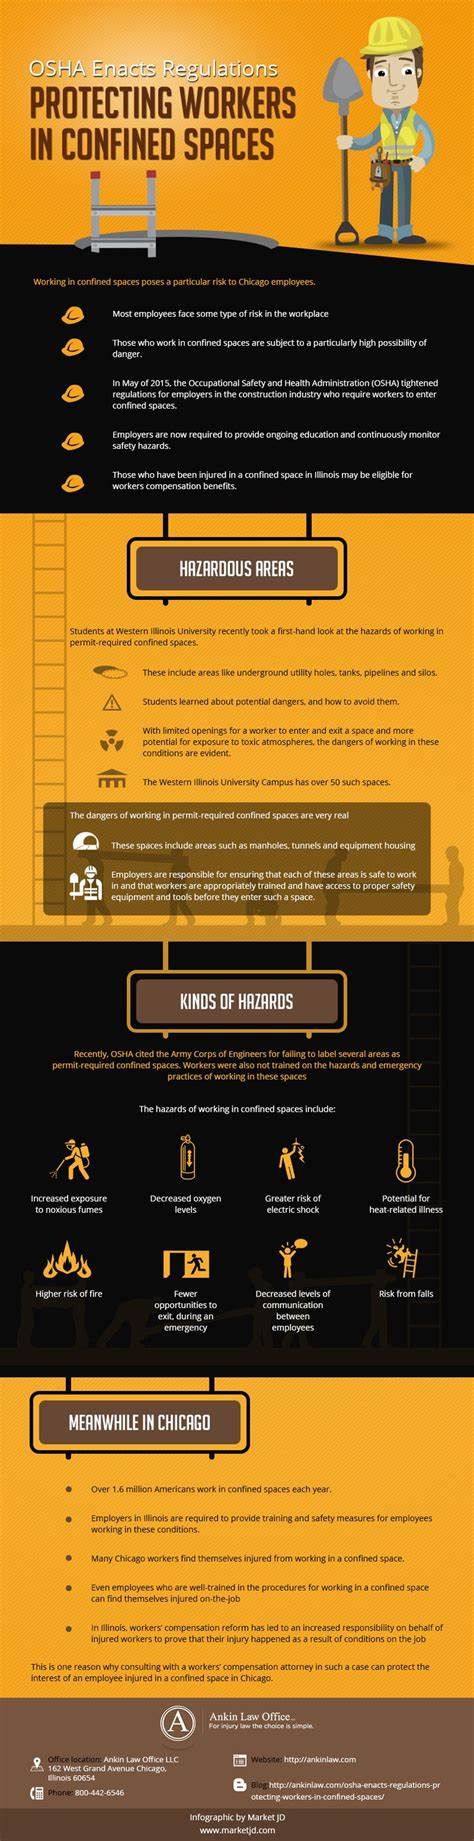 confined space images  pinterest confined space safety training  office safety